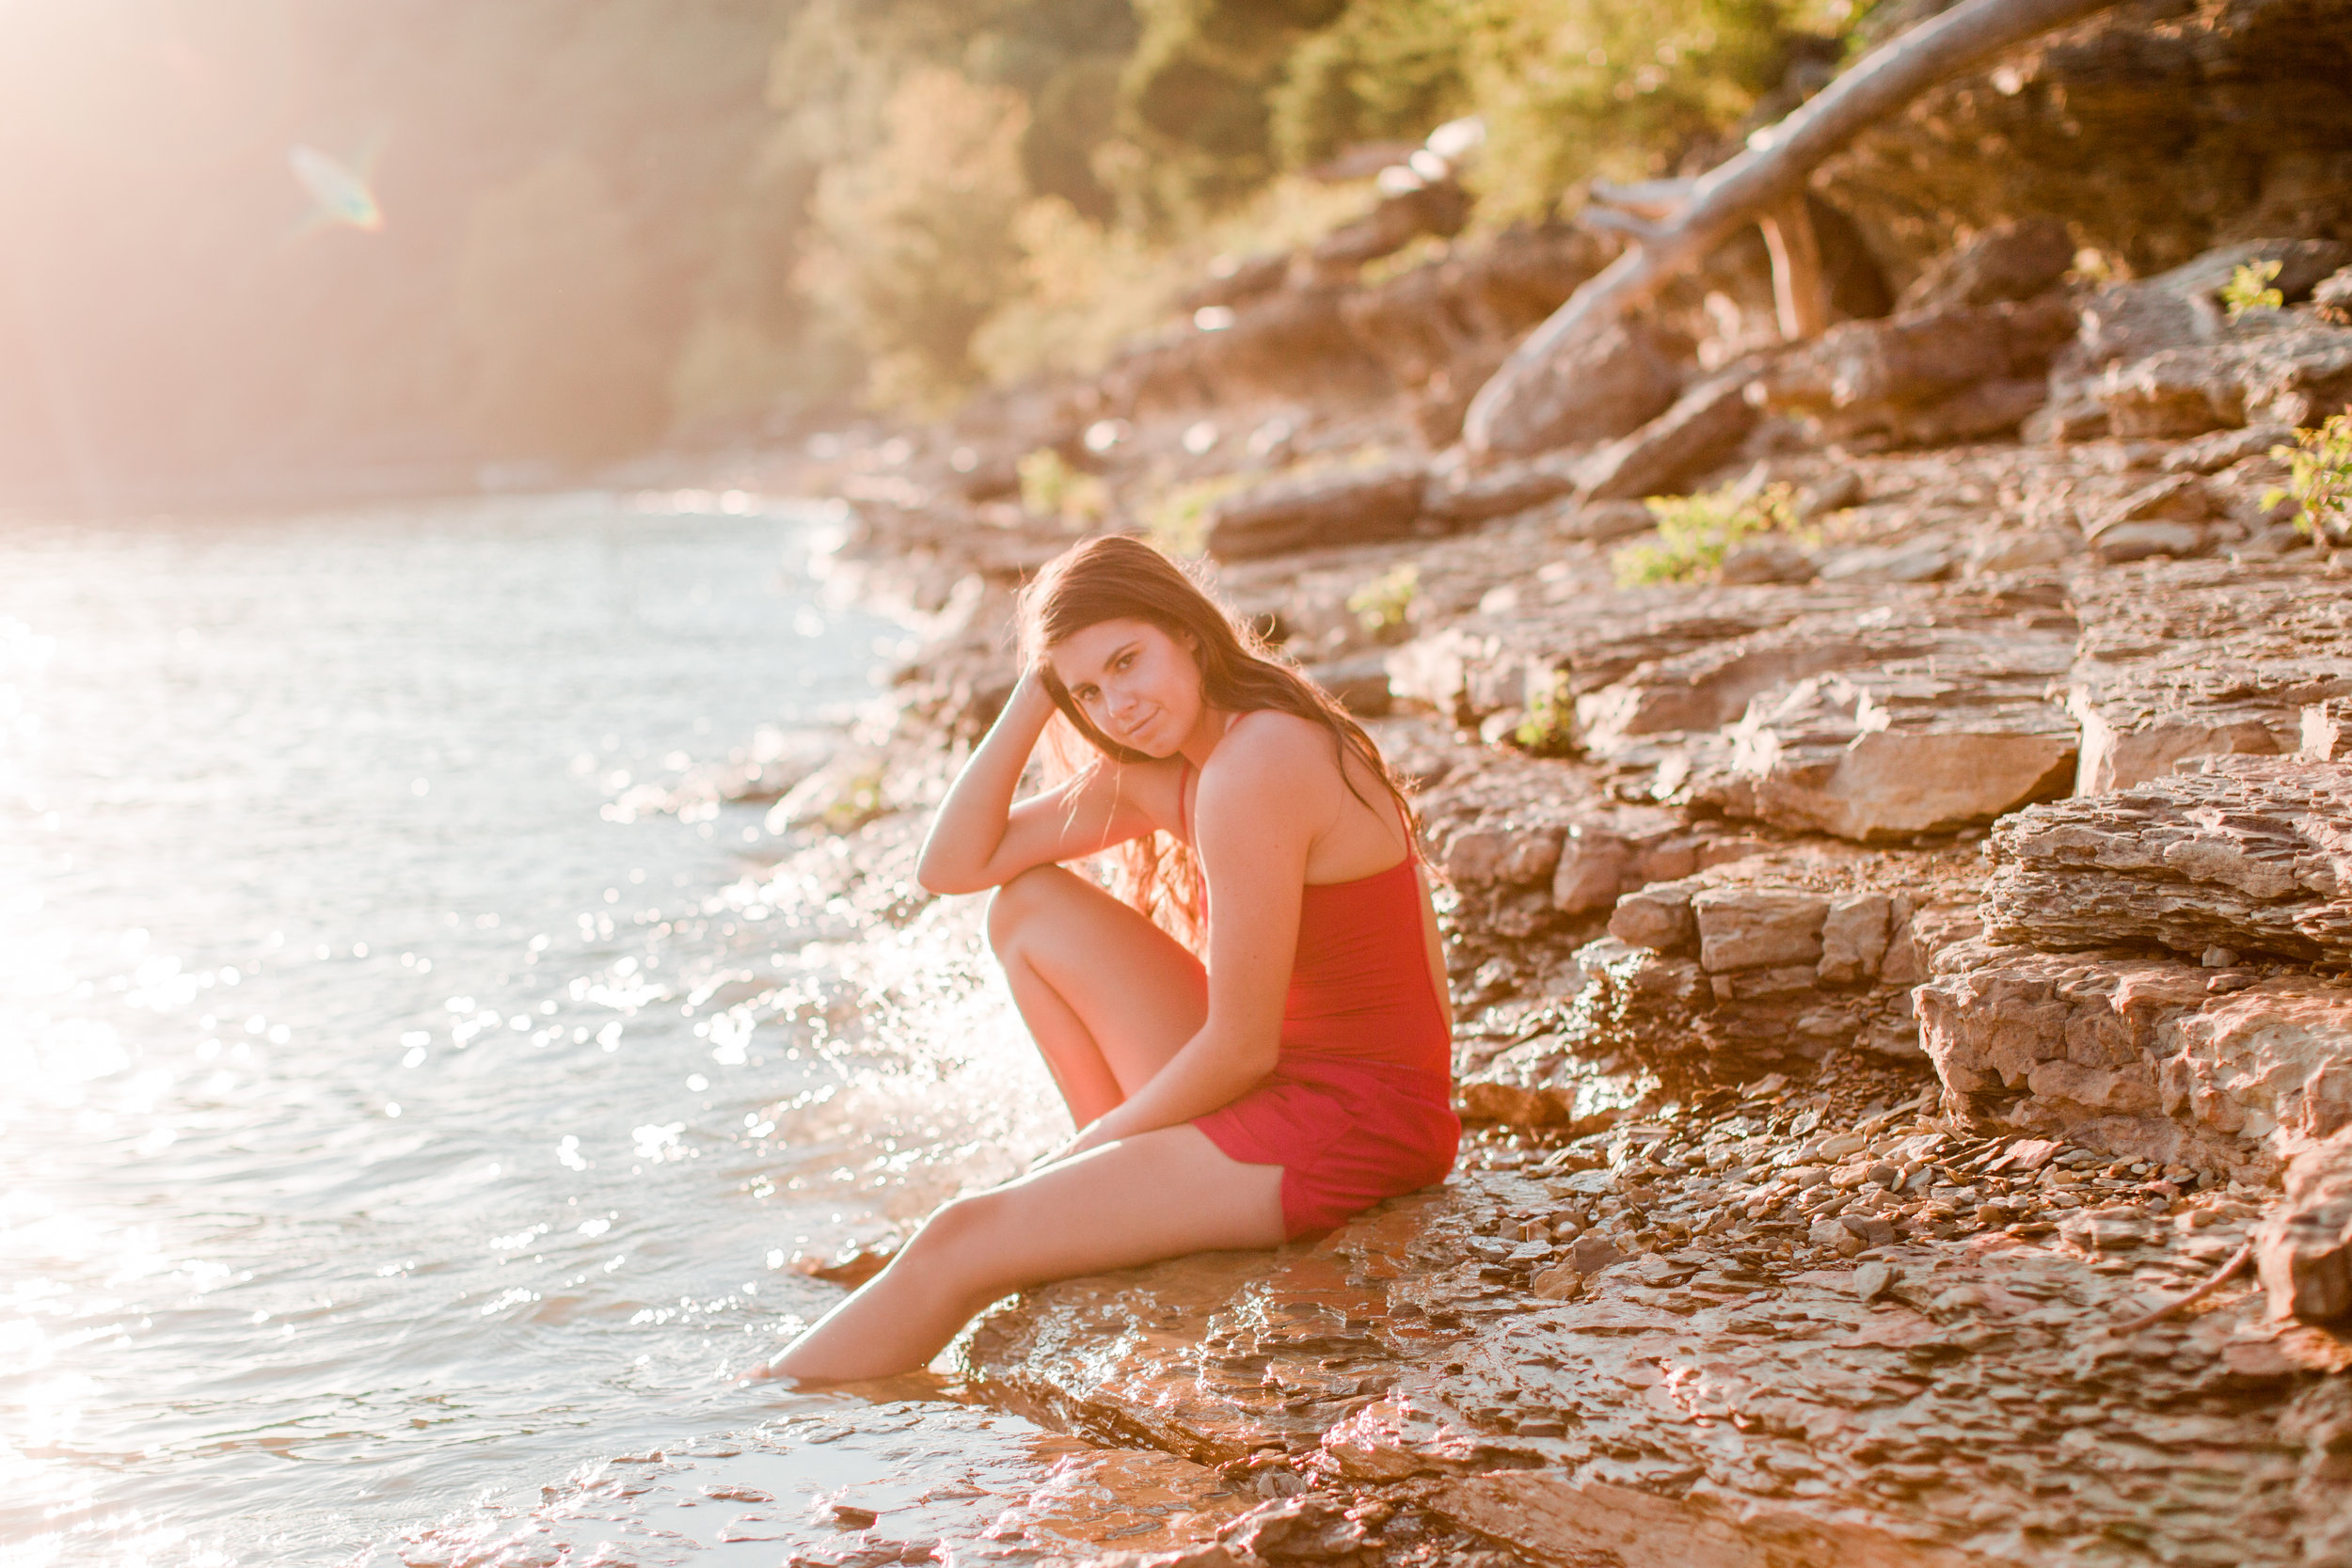 Carly has worked as a Lifeguard for a while now and loves what she does!